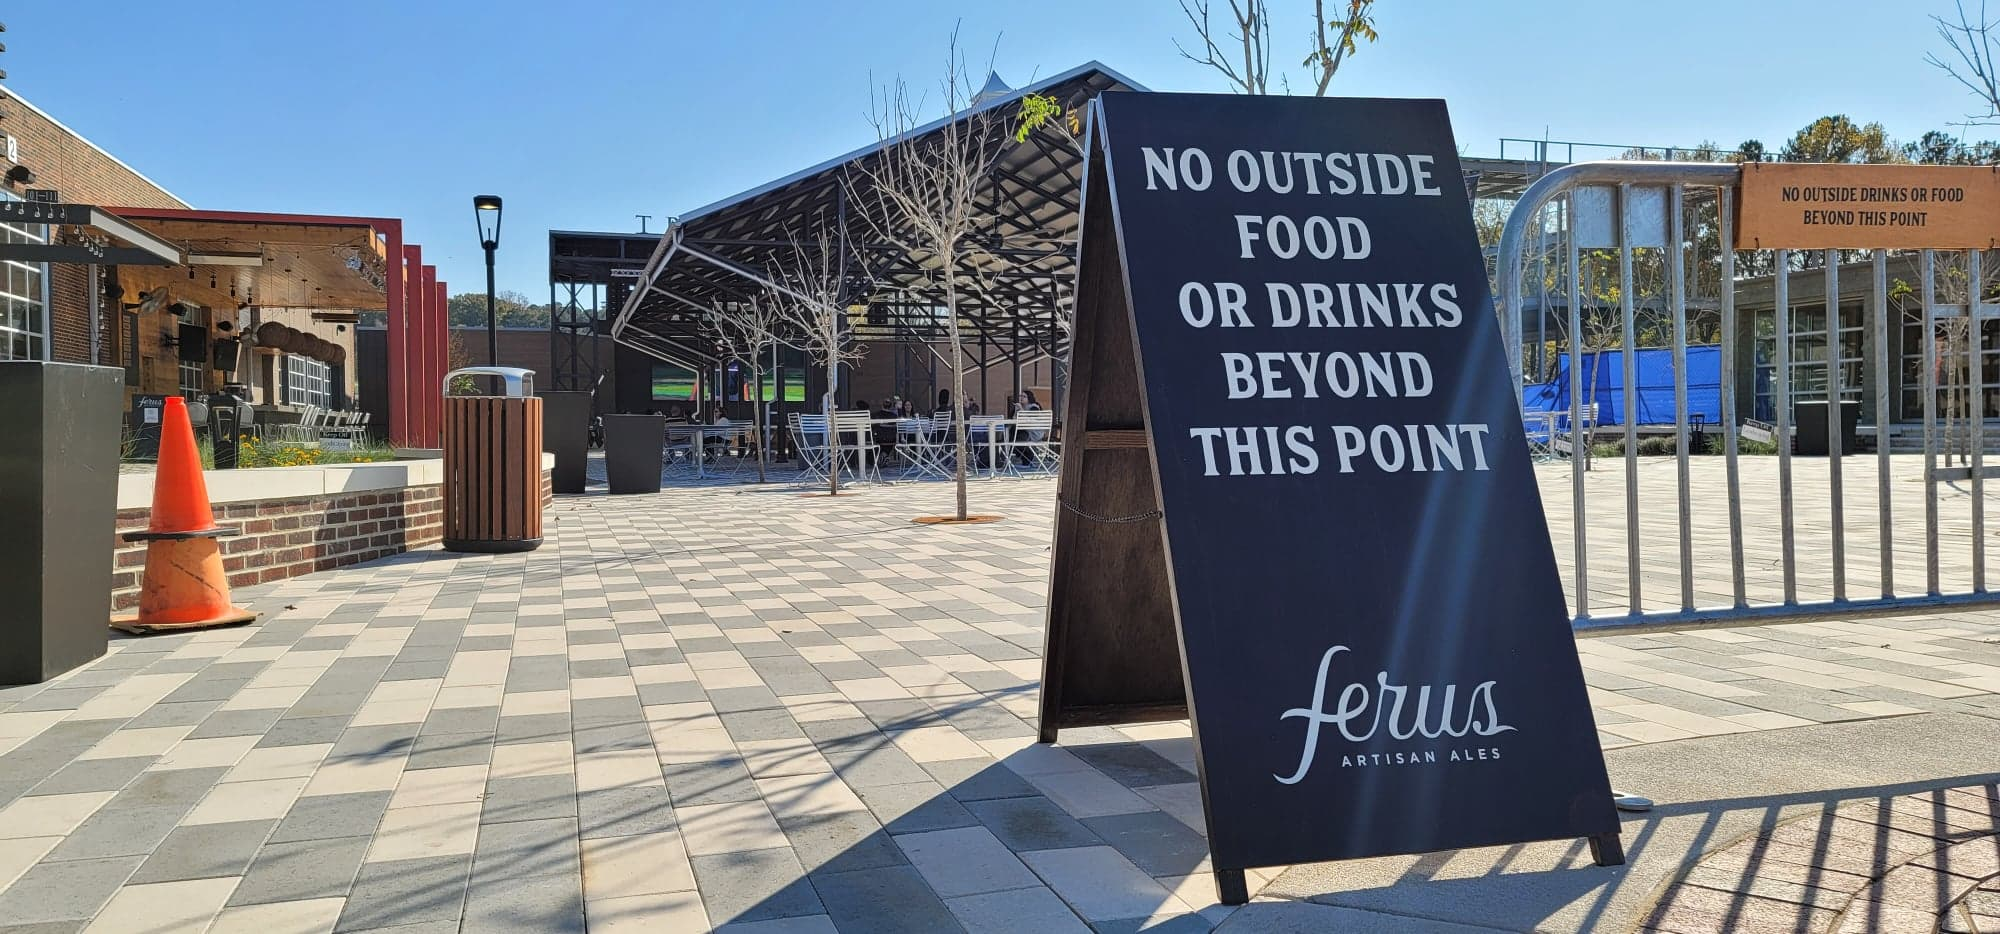 Ferus Artisan Ales booking events for Trussville's downtown pavilion and stage area